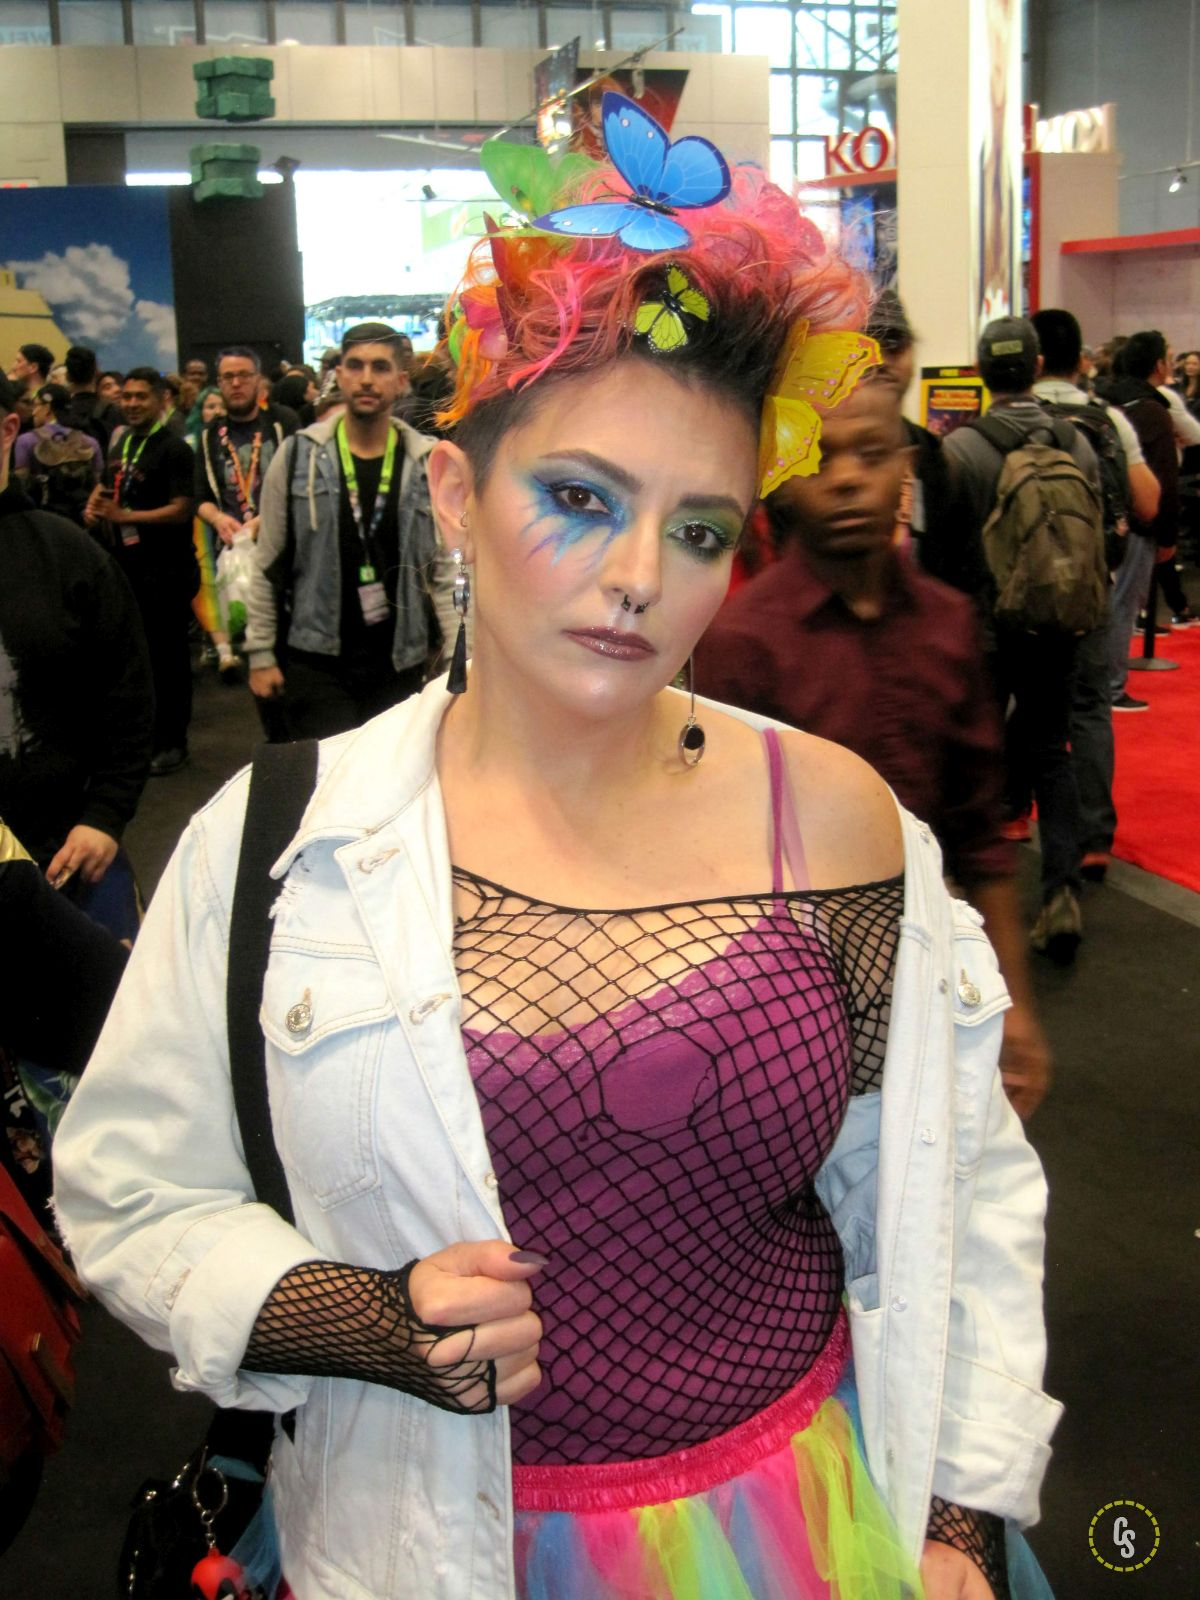 nycc182_054